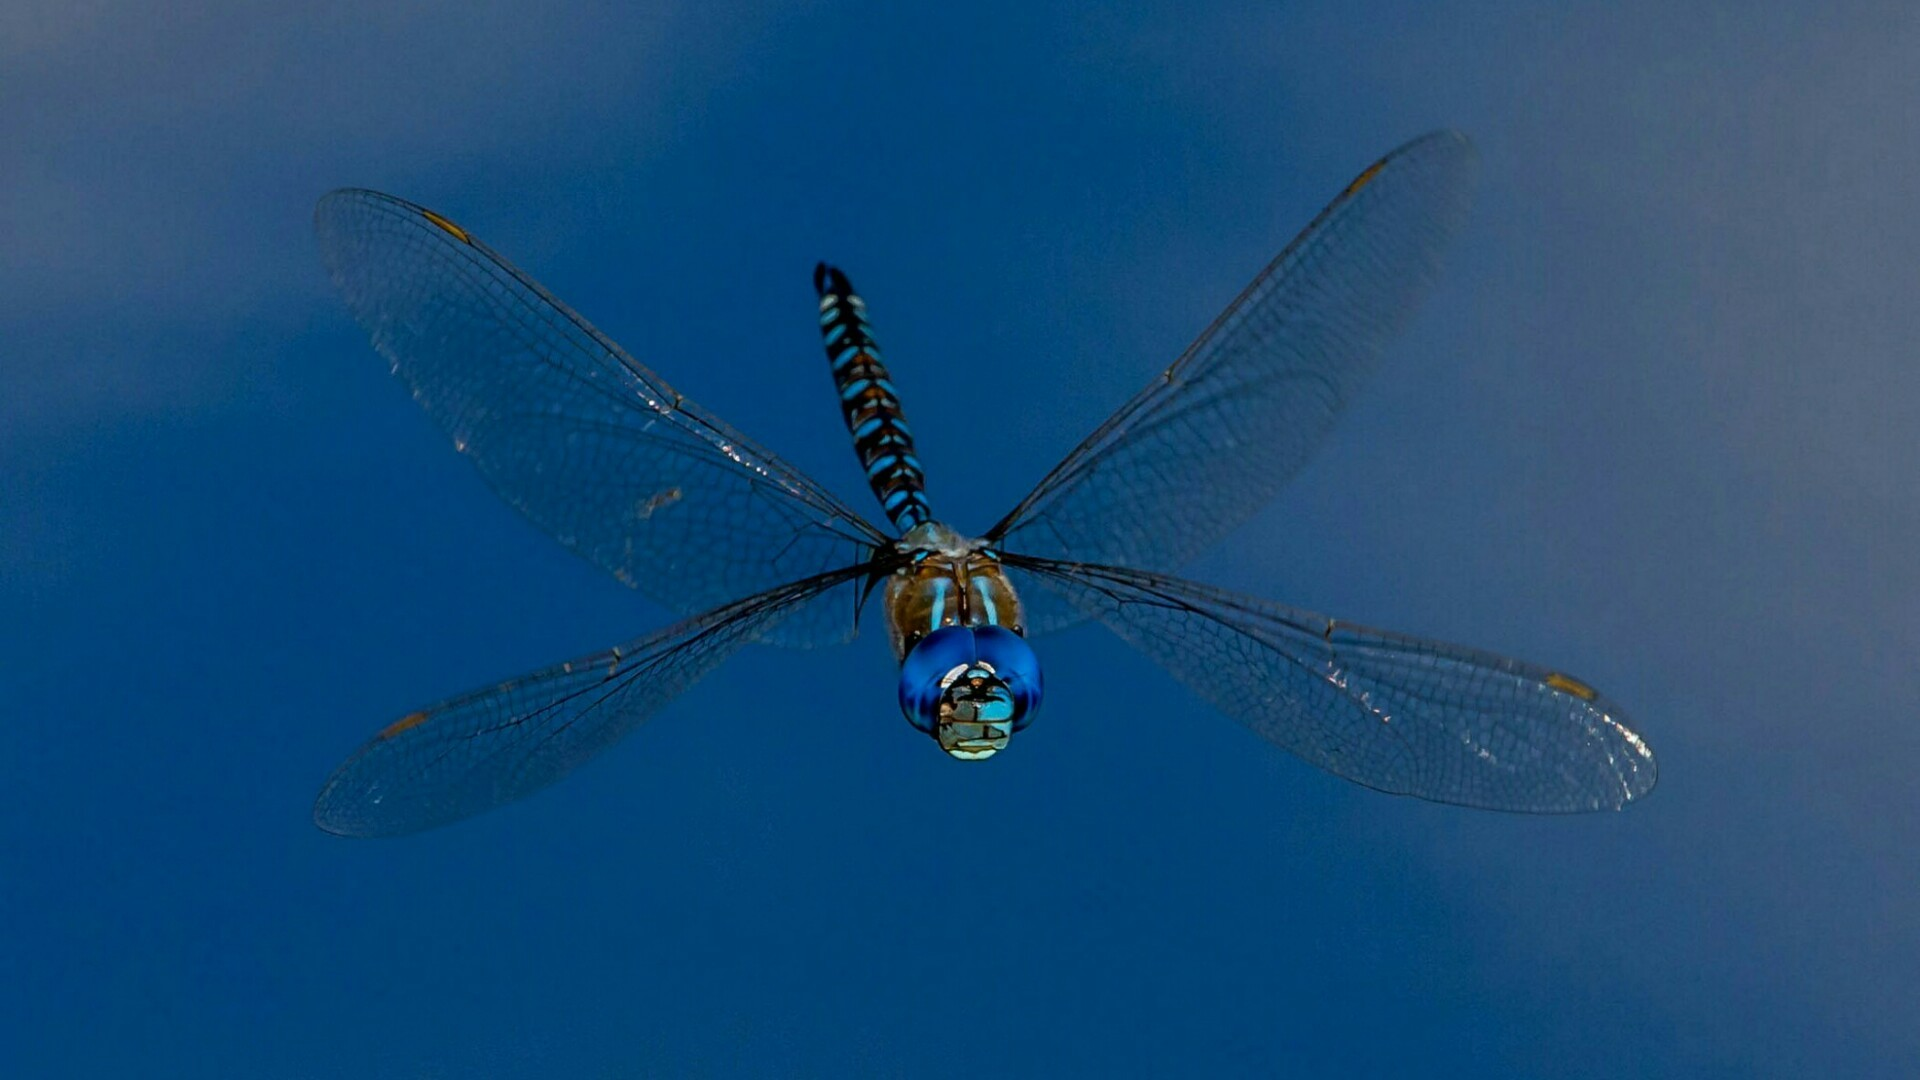 Res: 1920x1080, Dragonfly In The Blue Sky - Macro Photography Wallpaper | Wallpaper Studio  10 | Tens of thousands HD and UltraHD wallpapers for Android, Windows and  Xbox